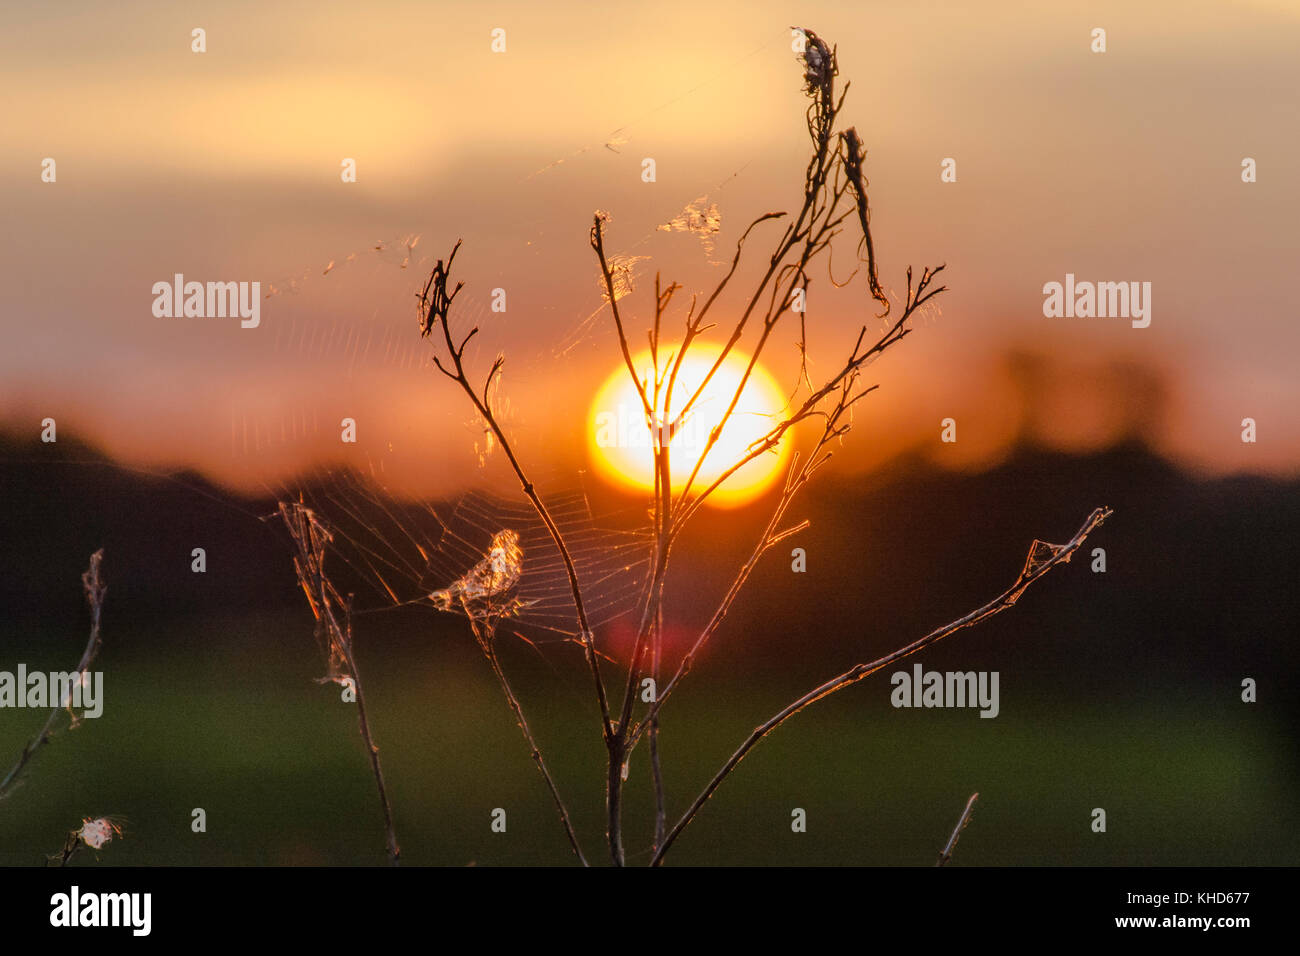 cobwebs on a wild plant illuminated by the sunset - Stock Image